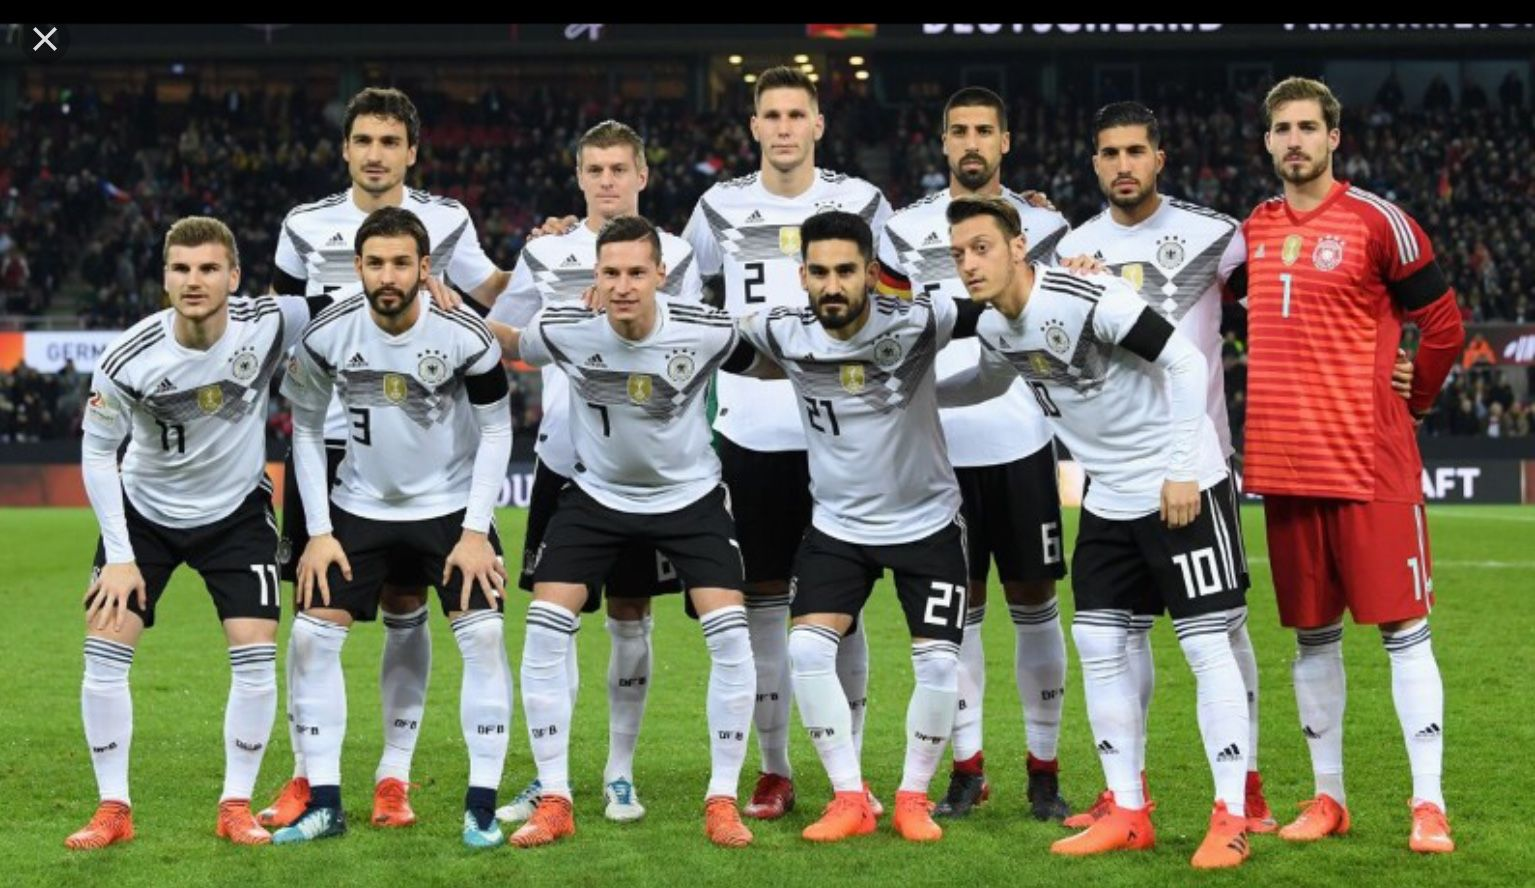 Pin By Sara On Germany National Football Team Germany Football Team Germany National Football Team Germany Football